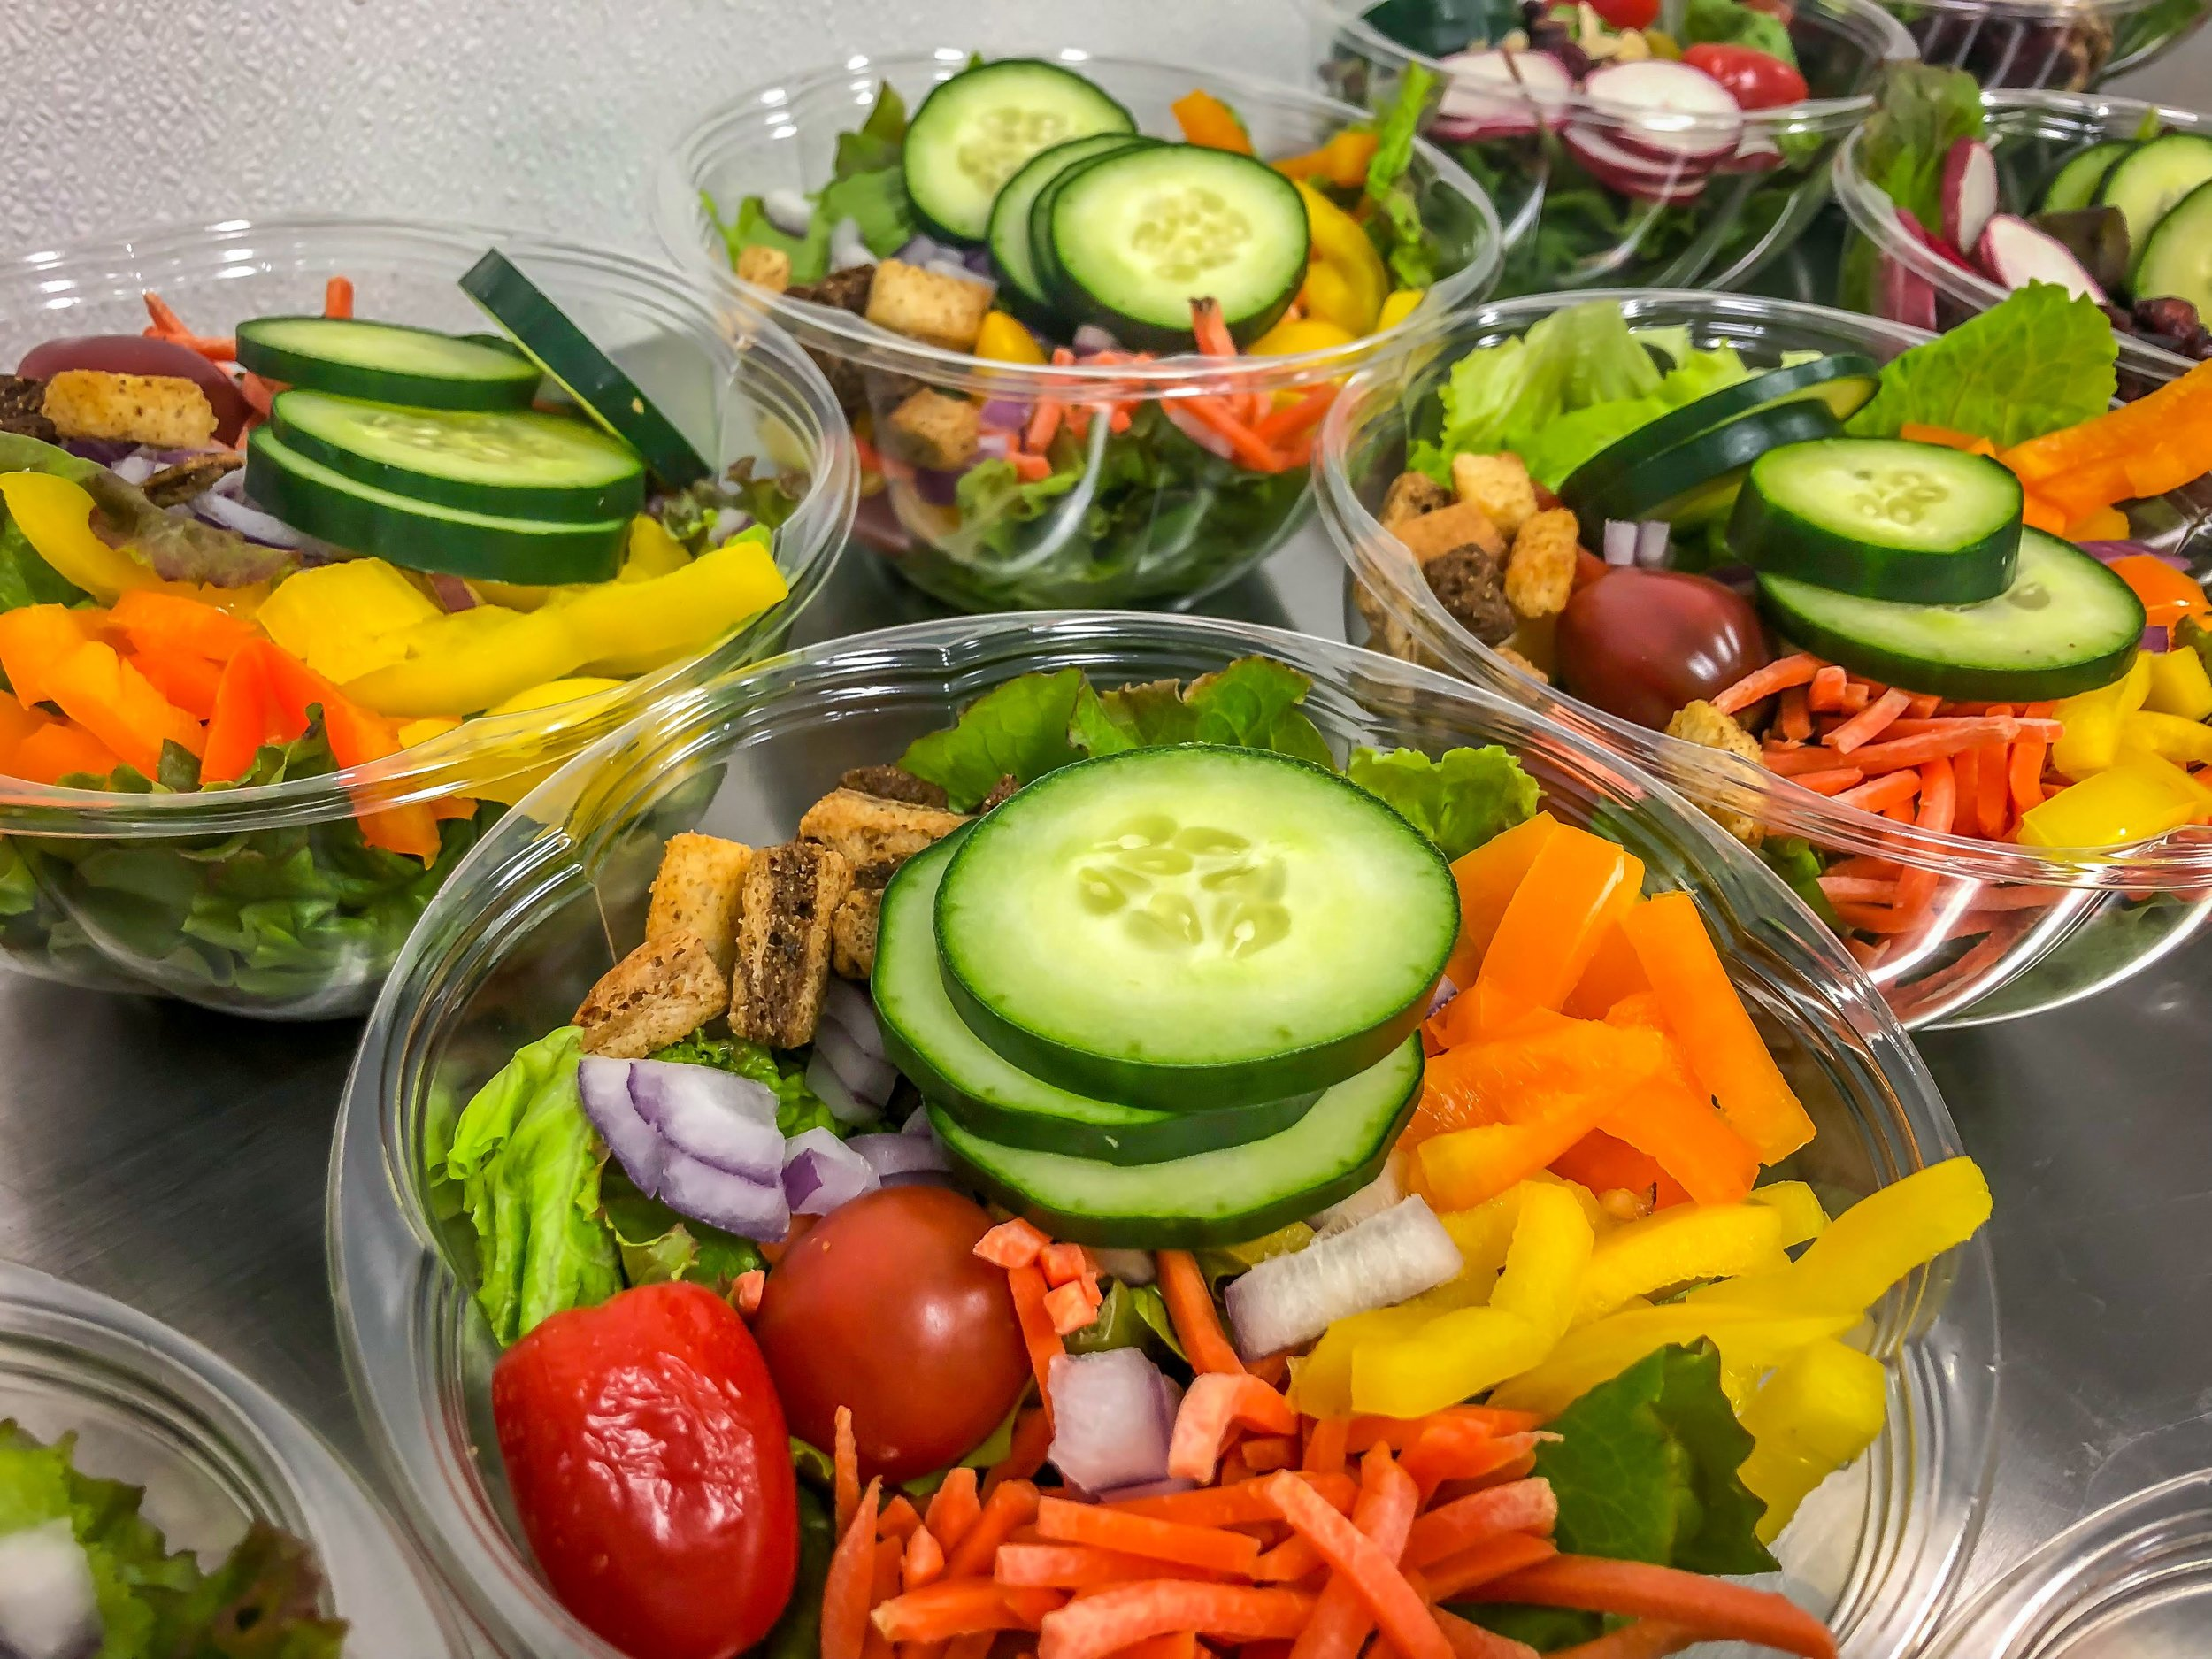 THE GARDEN   Our specialty greens mix, topped with plum tomatoes, yellow and orange bell peppers, cucumber, red onion, carrots, and croutons. Protein and homemade dressings available.